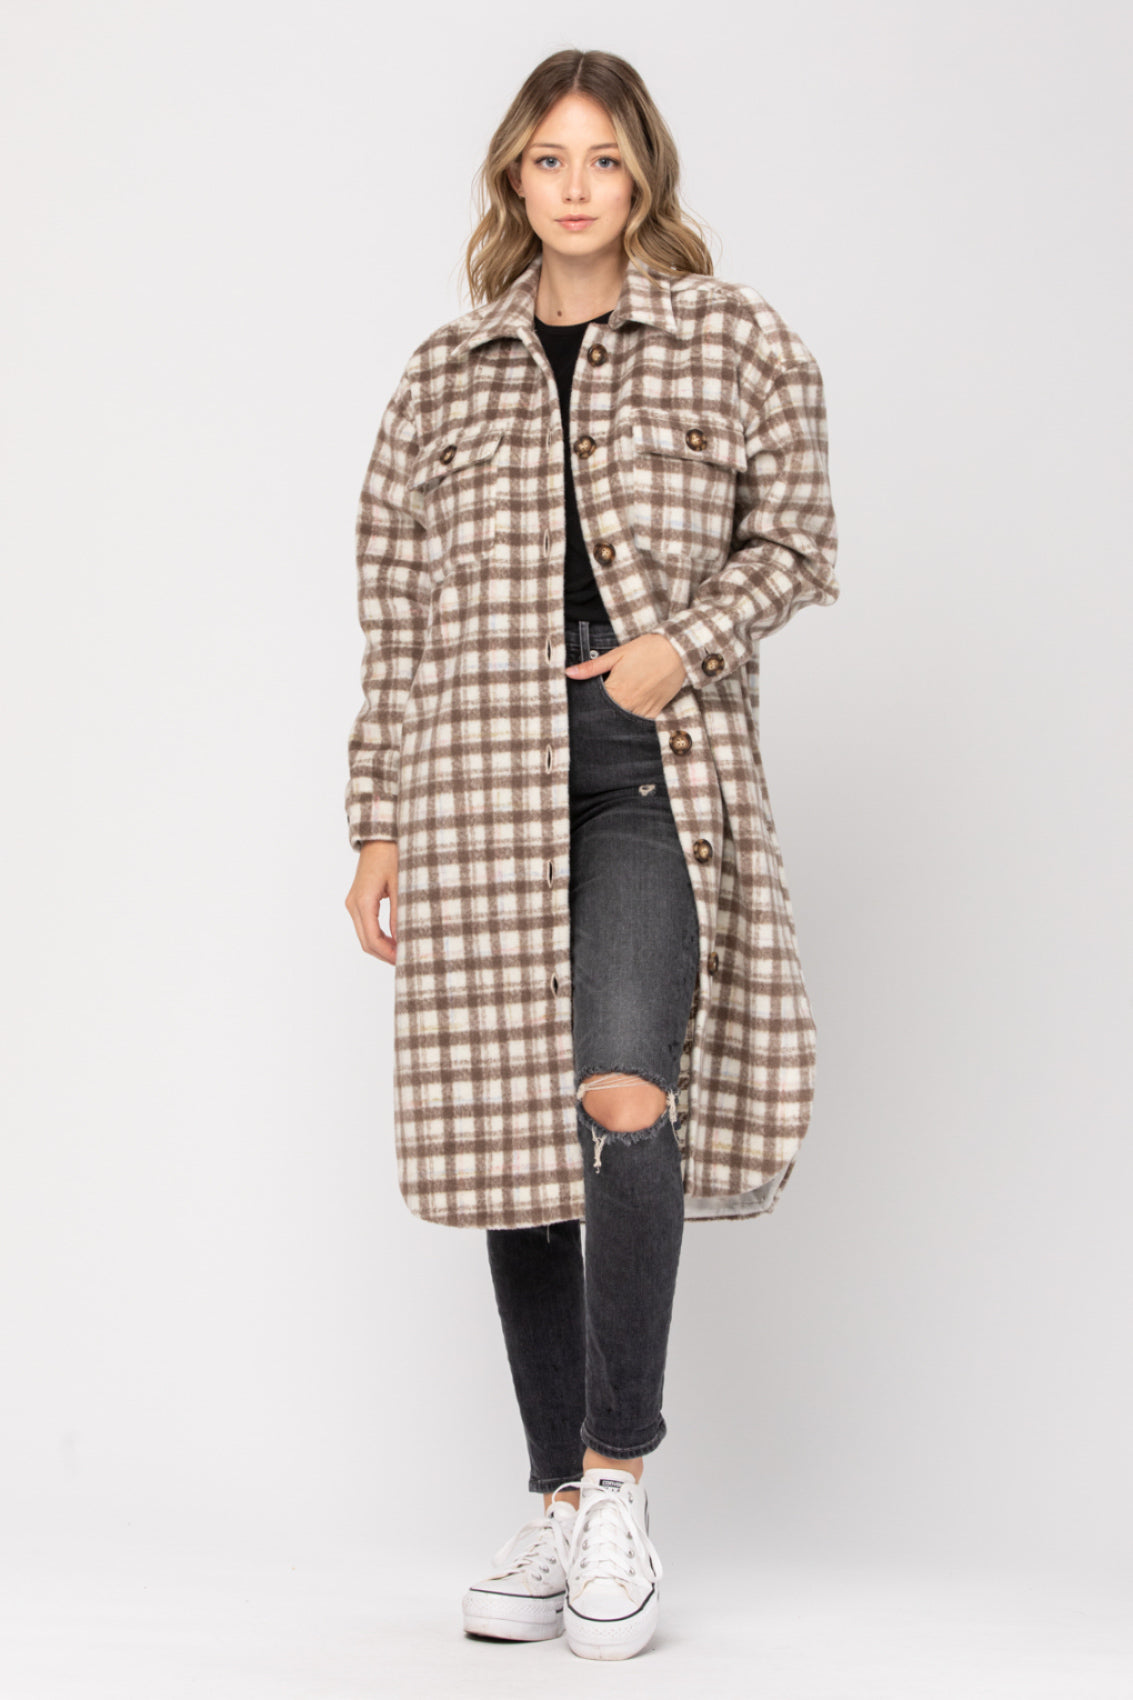 Clay Joan Plaid Shirt Coat